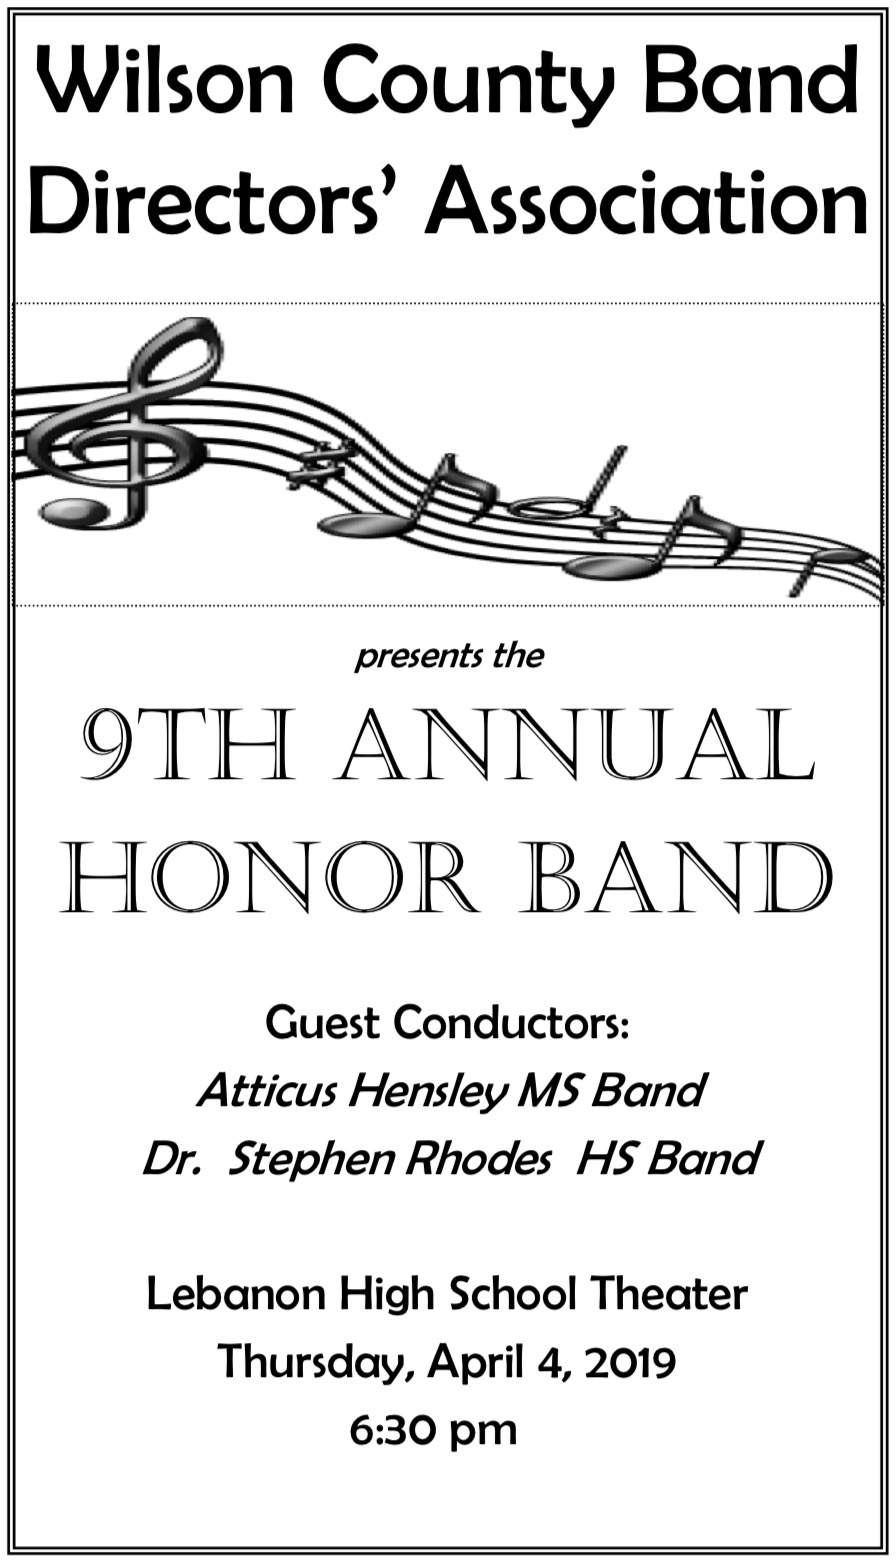 honorband_2019